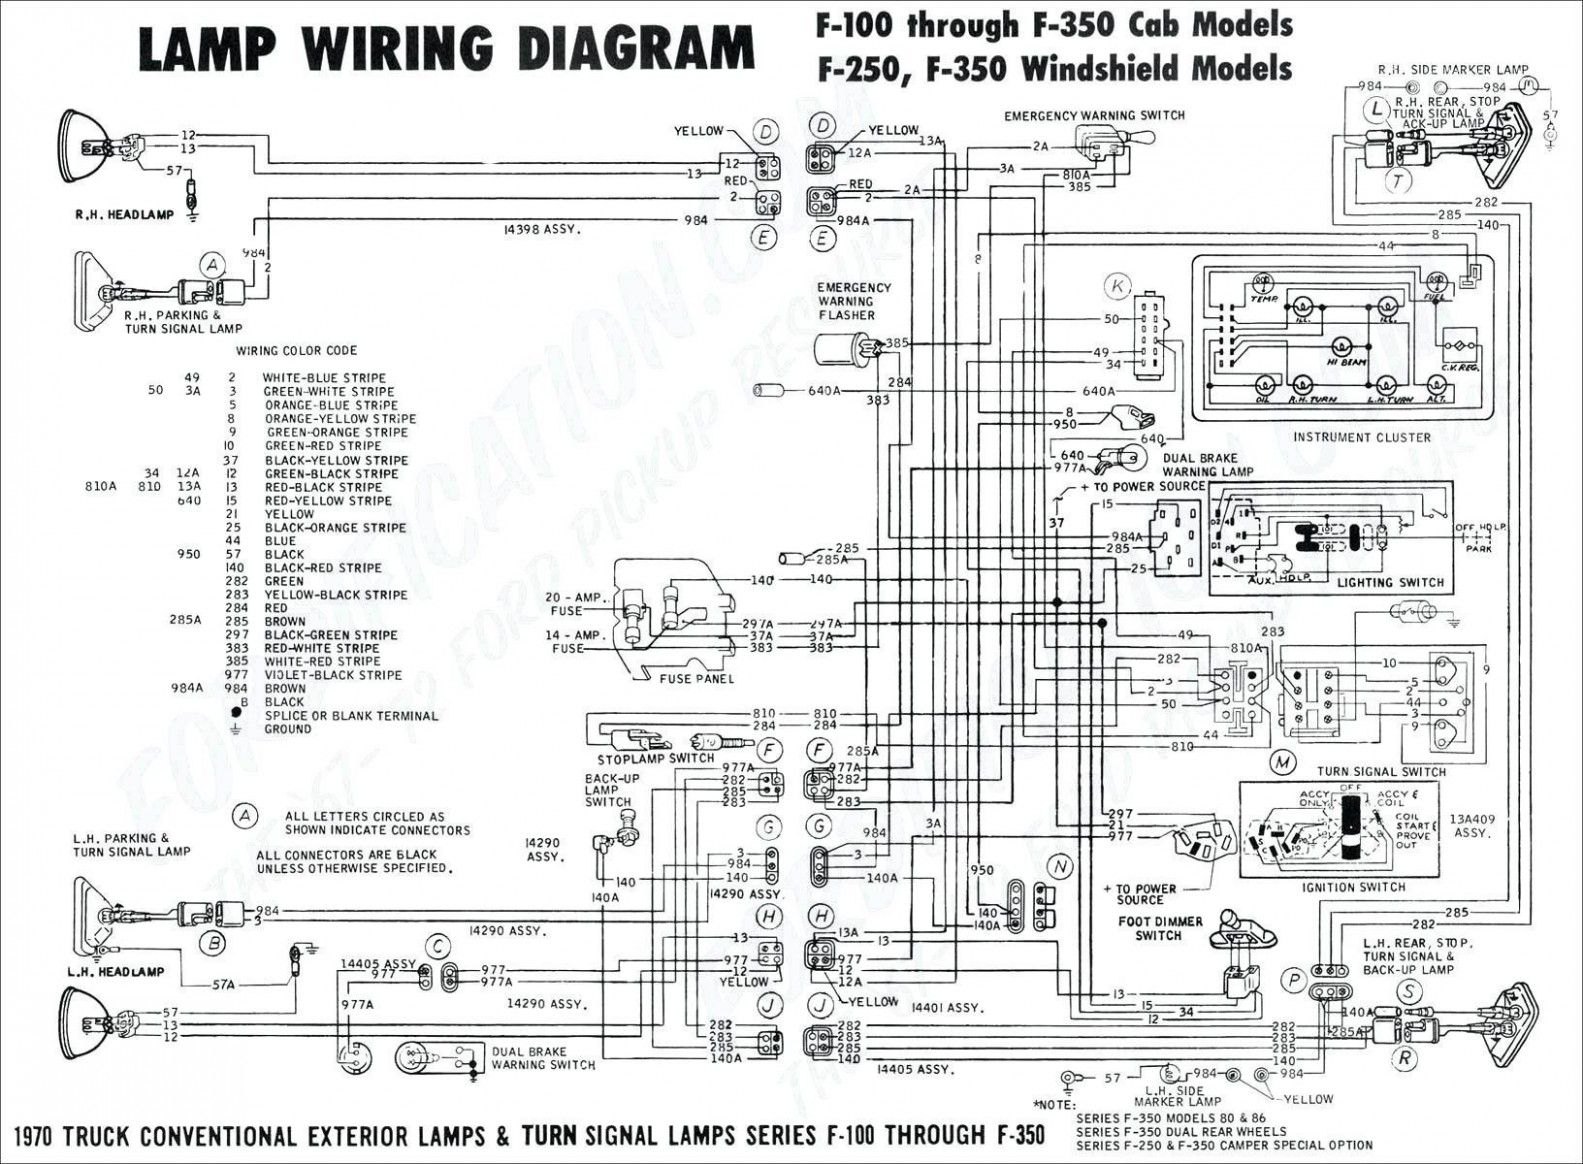 Daihatsu Hijet Engine Diagram Uk Honda Accord Nissan Maxima Honda Civic